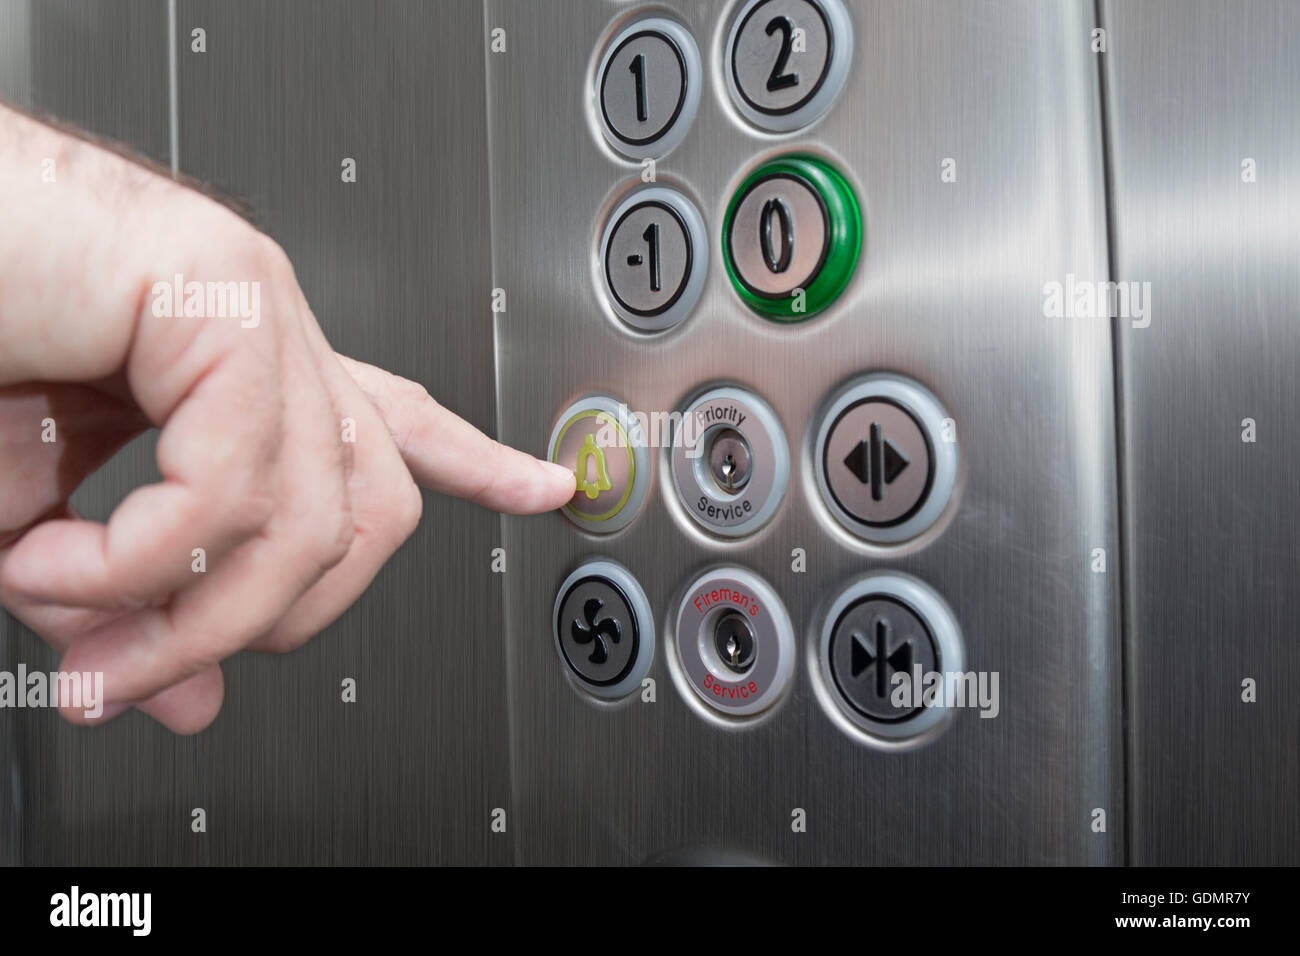 Forefinger pressing the alarm button in the elevator - Stock Image